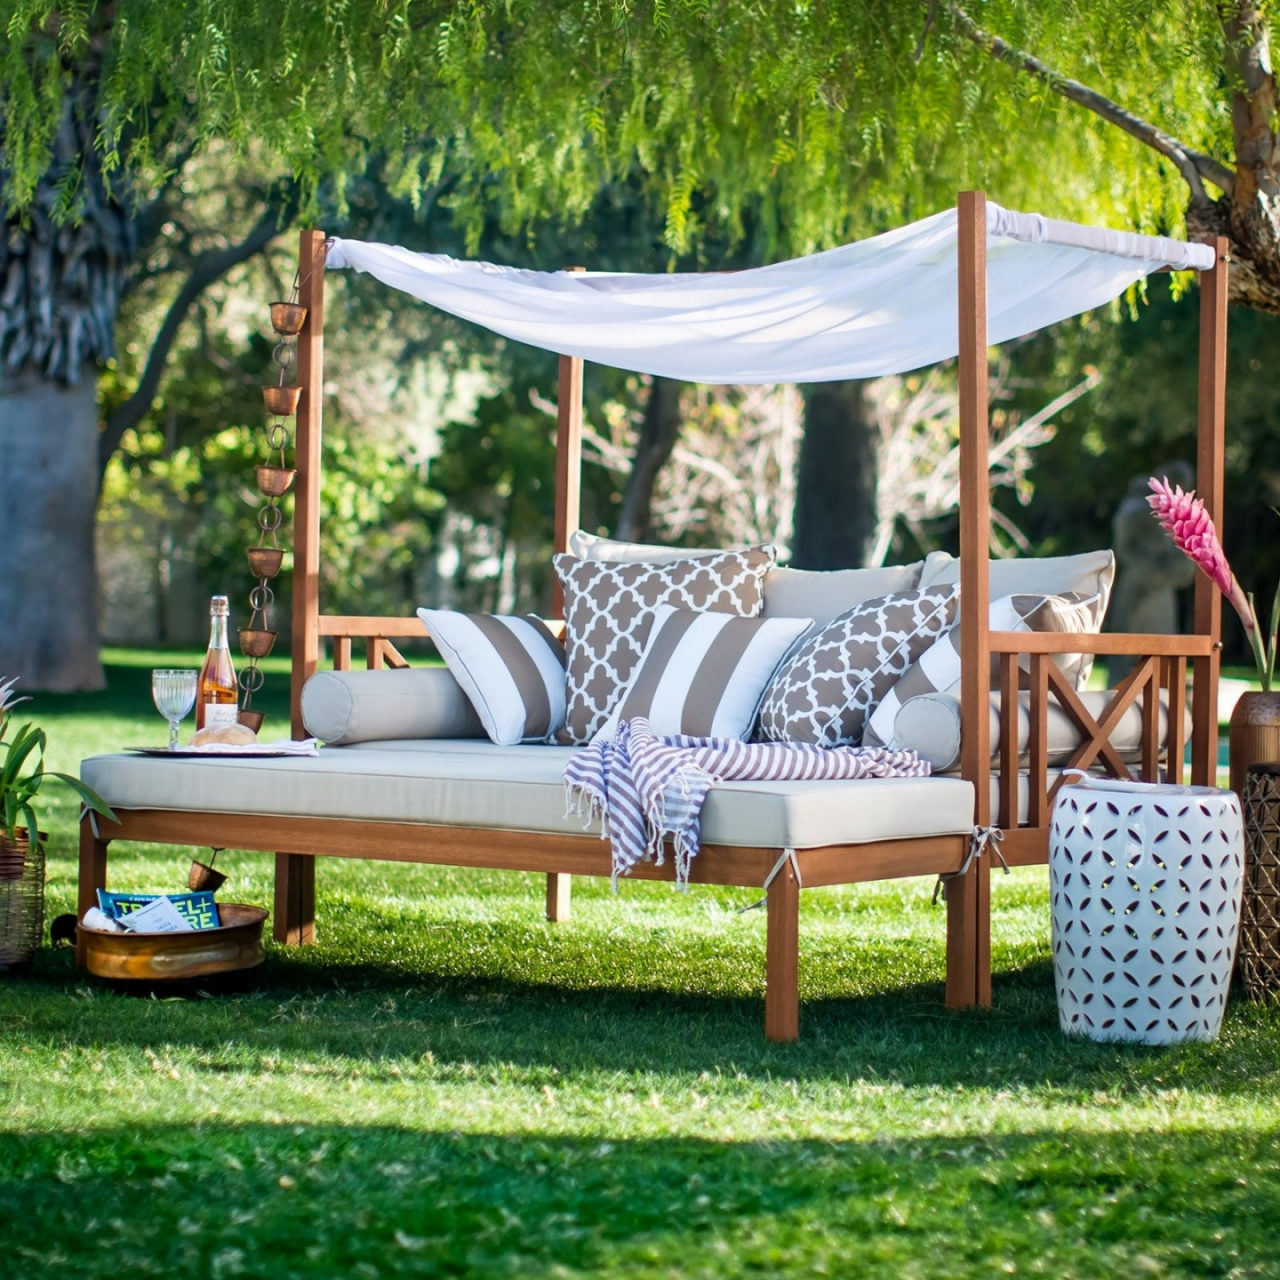 patio daybed outdoor ideas 46 porch swing frame plans remarkable patio daybed durch patio daybed